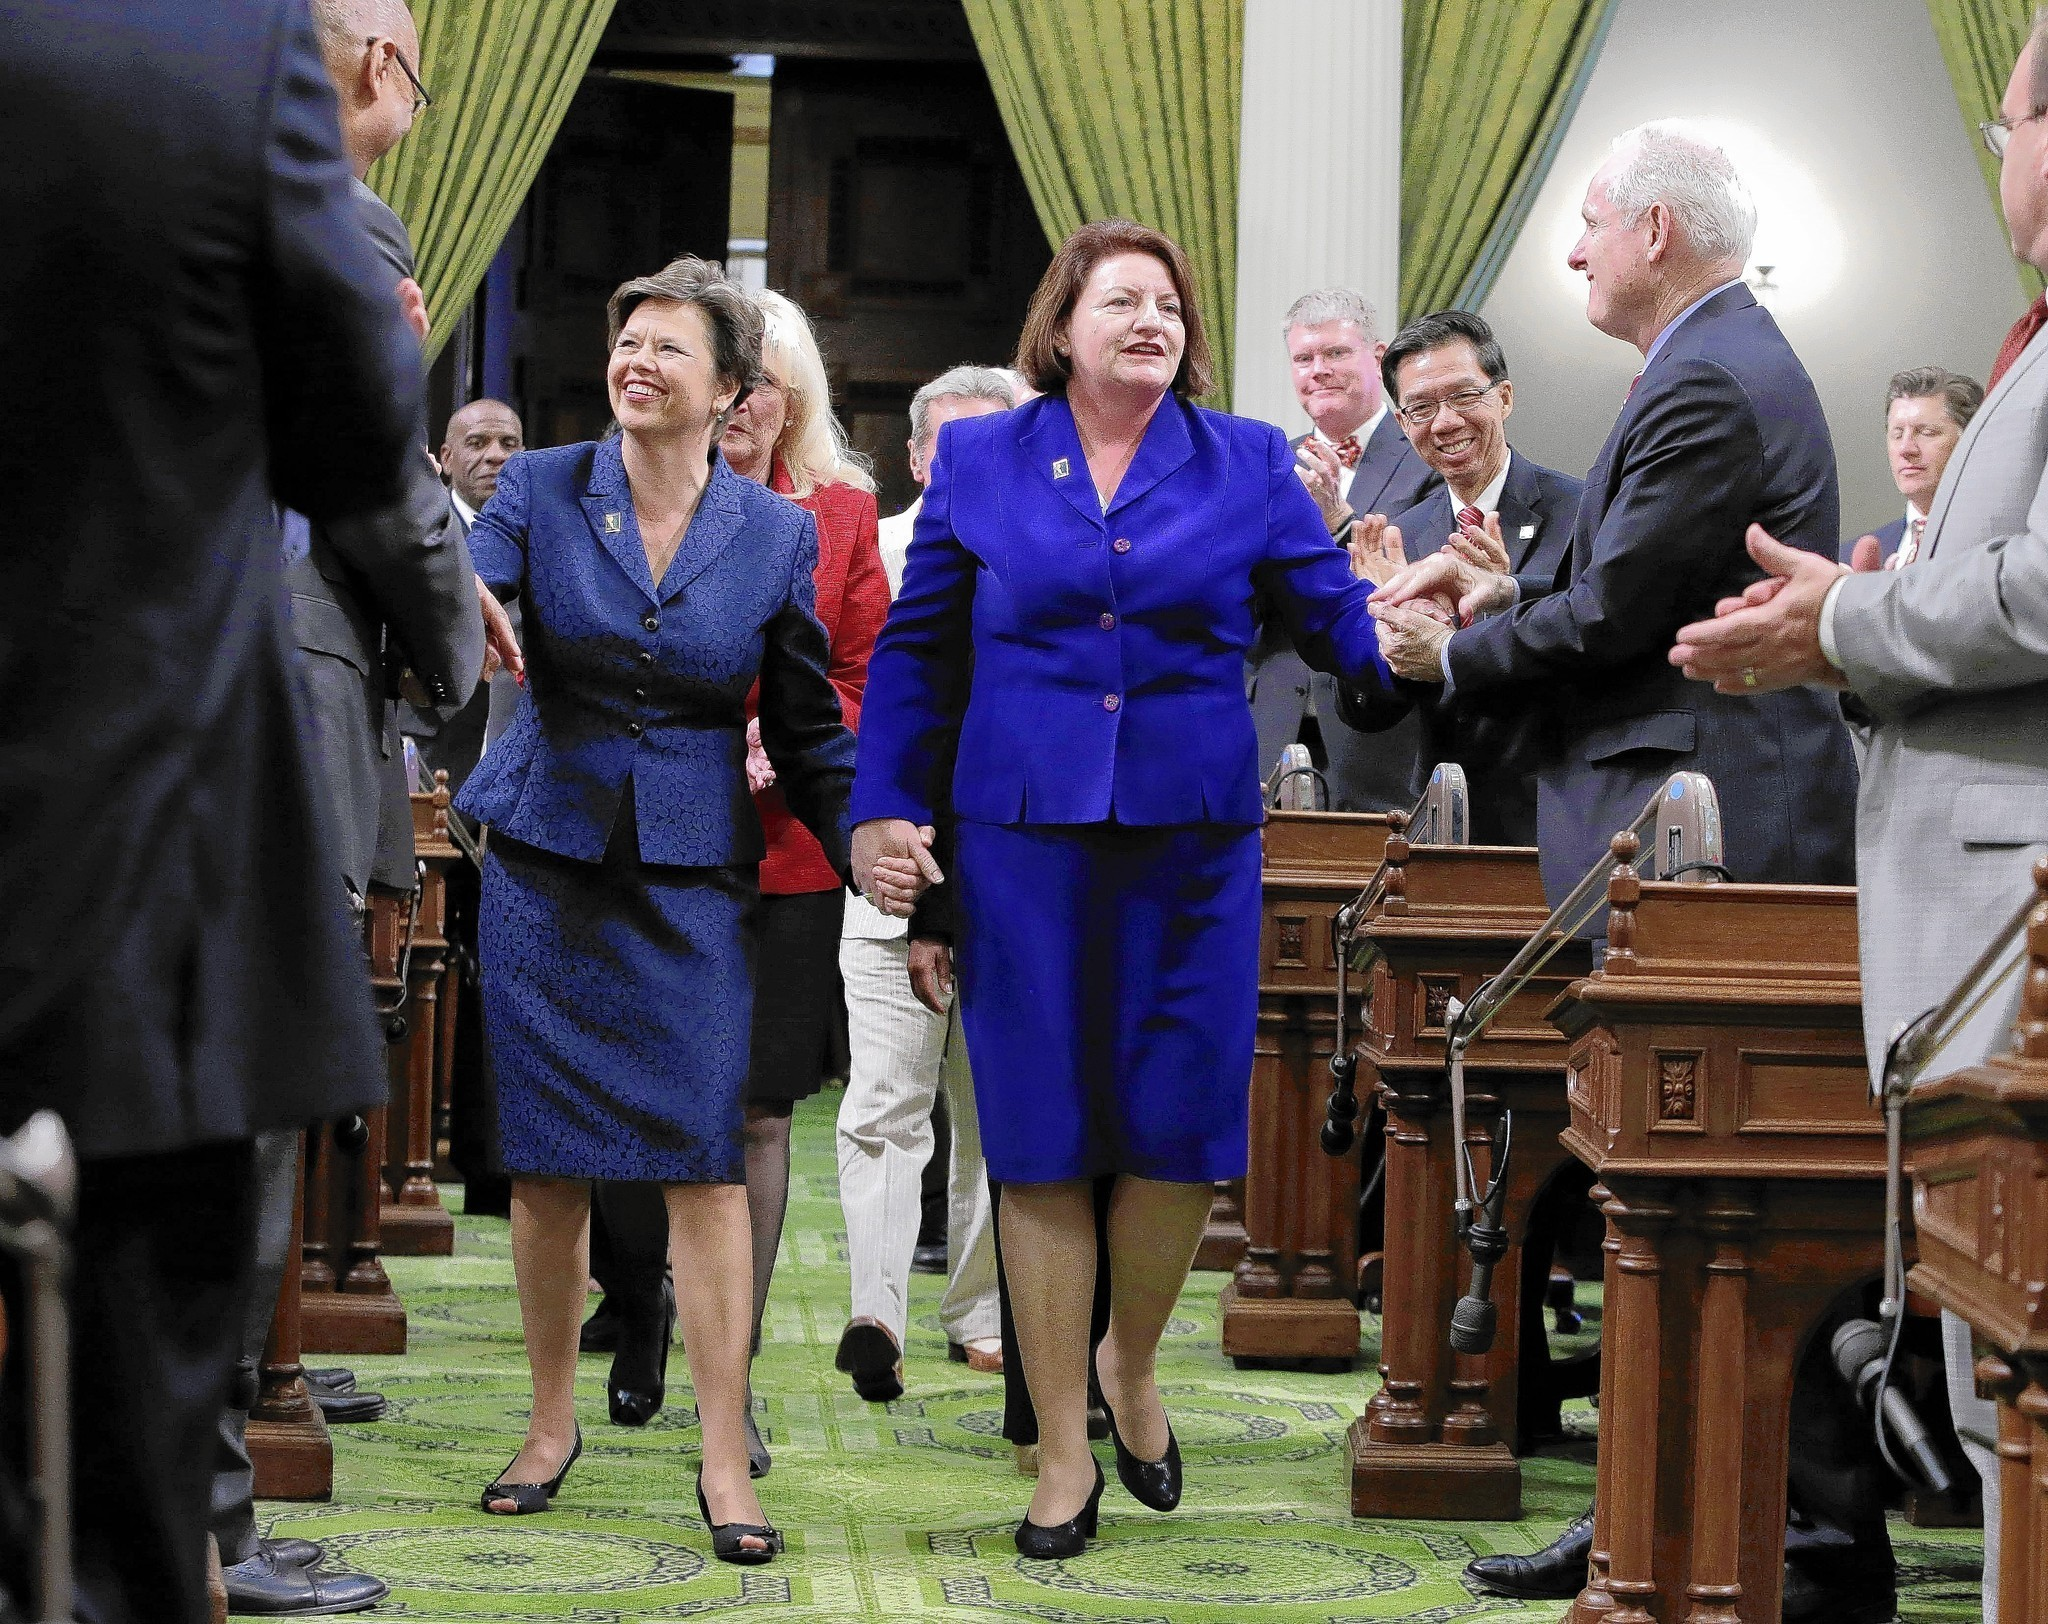 Toni Atkins (D-San Diego), right, walks hand in hand with her spouse, Jennifer LeSar, to the rostrum when she was elected as Assembly speaker in 2014. She will be the next leader of the Senate. (Associated Press)